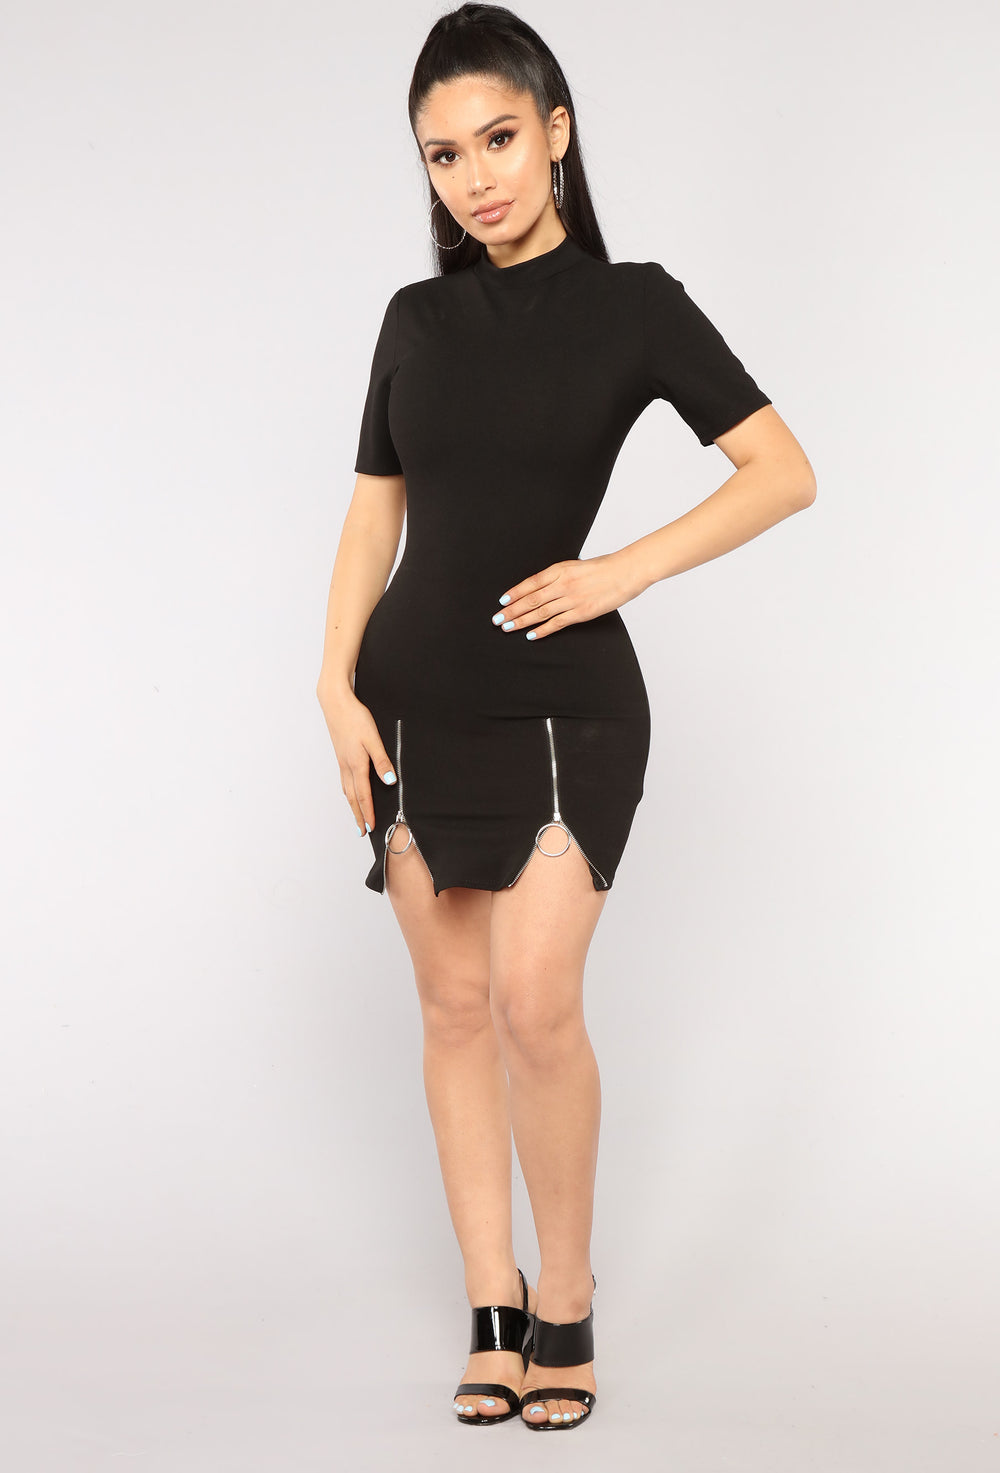 Over You O Ring Dress - Black